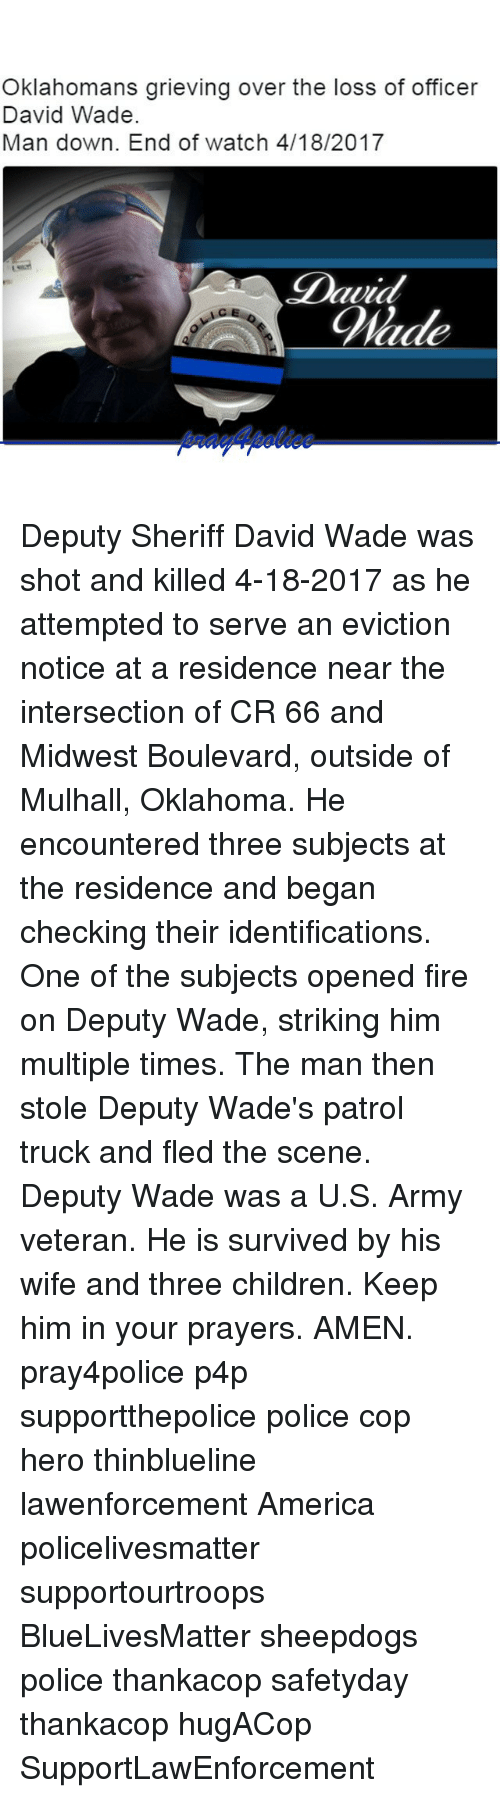 America, Blade, and Children: Oklahomans grieving over the loss of officer  David Wade.  Man down. End of watch 4/18/2017  Blade Deputy Sheriff David Wade was shot and killed 4-18-2017 as he attempted to serve an eviction notice at a residence near the intersection of CR 66 and Midwest Boulevard, outside of Mulhall, Oklahoma. He encountered three subjects at the residence and began checking their identifications. One of the subjects opened fire on Deputy Wade, striking him multiple times. The man then stole Deputy Wade's patrol truck and fled the scene. Deputy Wade was a U.S. Army veteran. He is survived by his wife and three children. Keep him in your prayers. AMEN. pray4police p4p supportthepolice police cop hero thinblueline lawenforcement America policelivesmatter supportourtroops BlueLivesMatter sheepdogs police thankacop safetyday thankacop hugACop SupportLawEnforcement